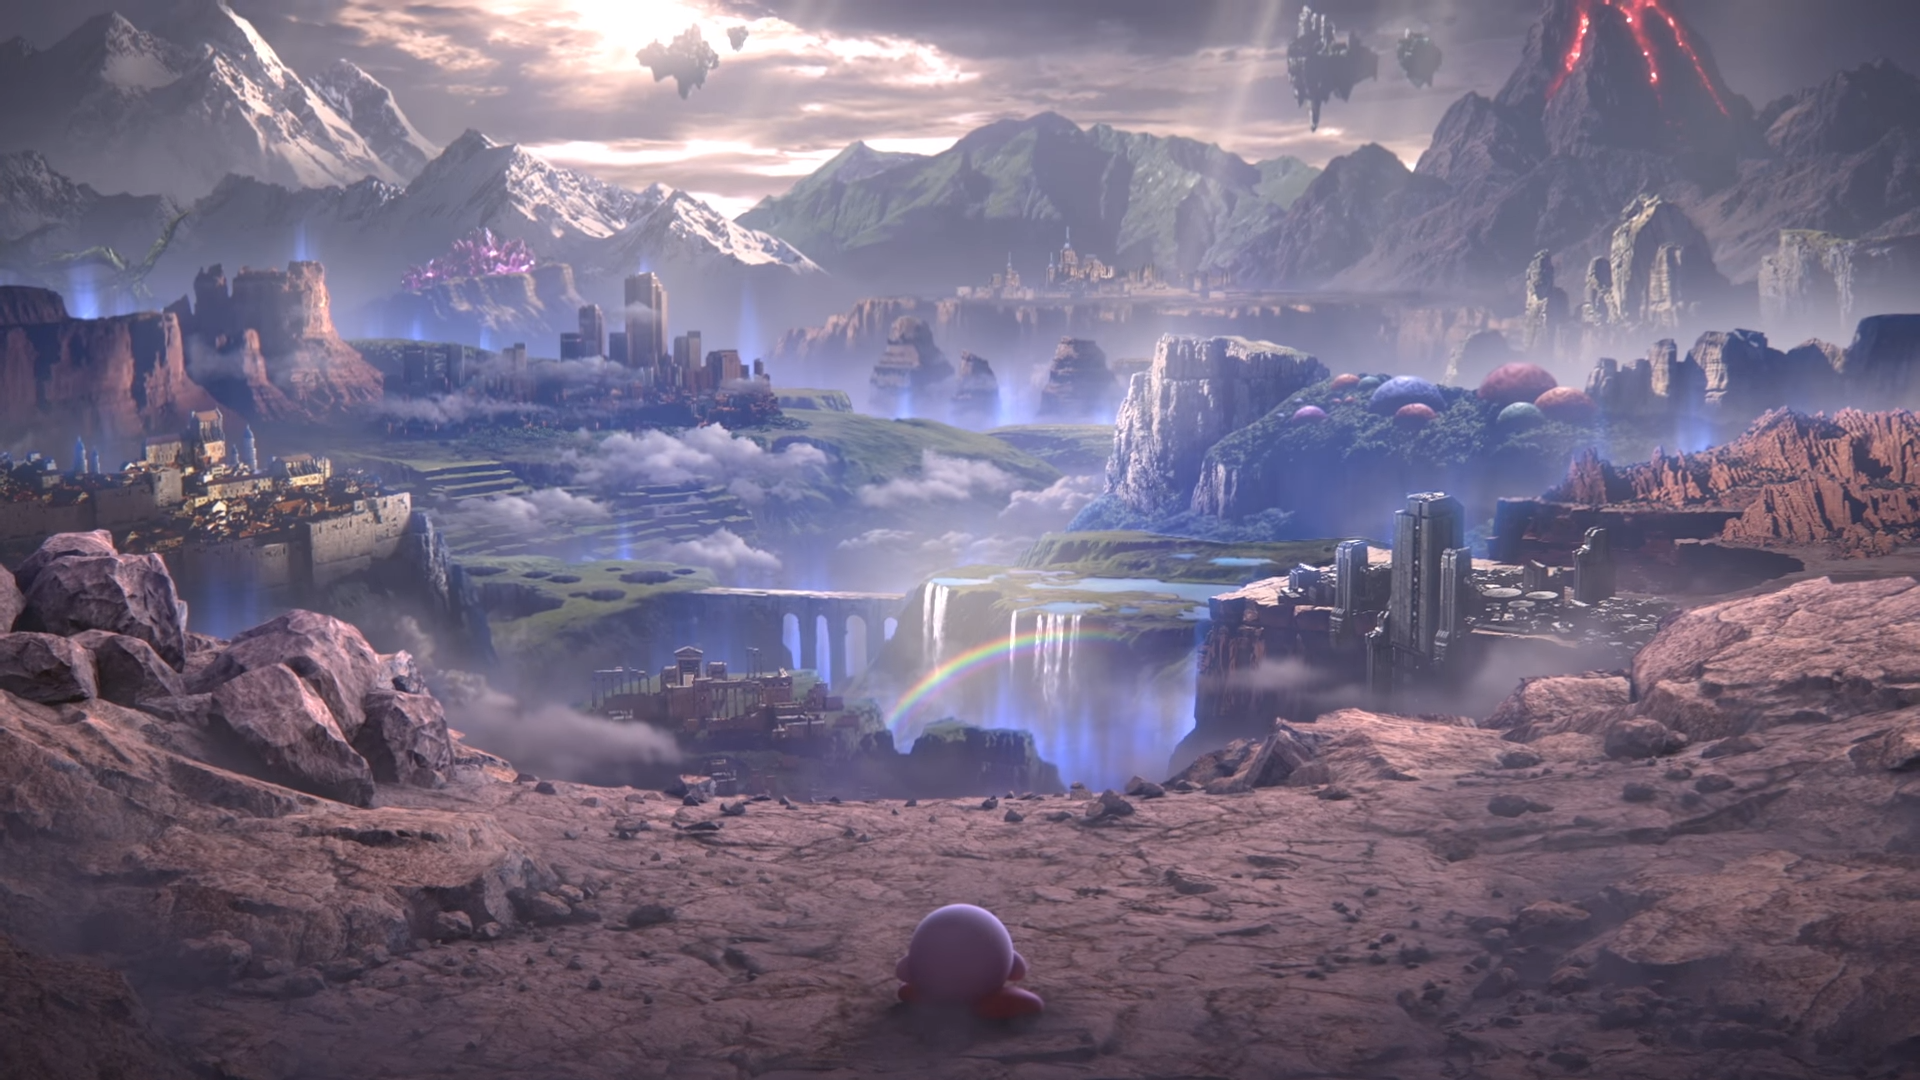 That Kirby Scene from the World of Light trailer but as a 1920x1080